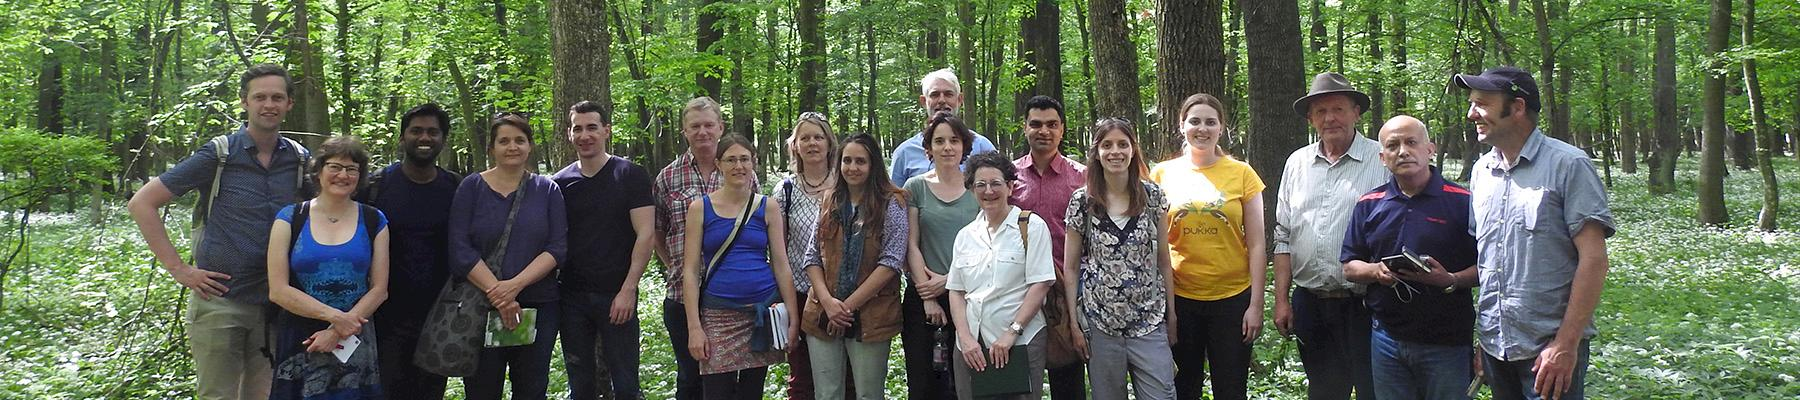 Participants of the FairWild Forum 2019 on the field trip to collections sites of Schmidt und Co., Hungary. Photo: Kirsten Palme / TRAFFIC